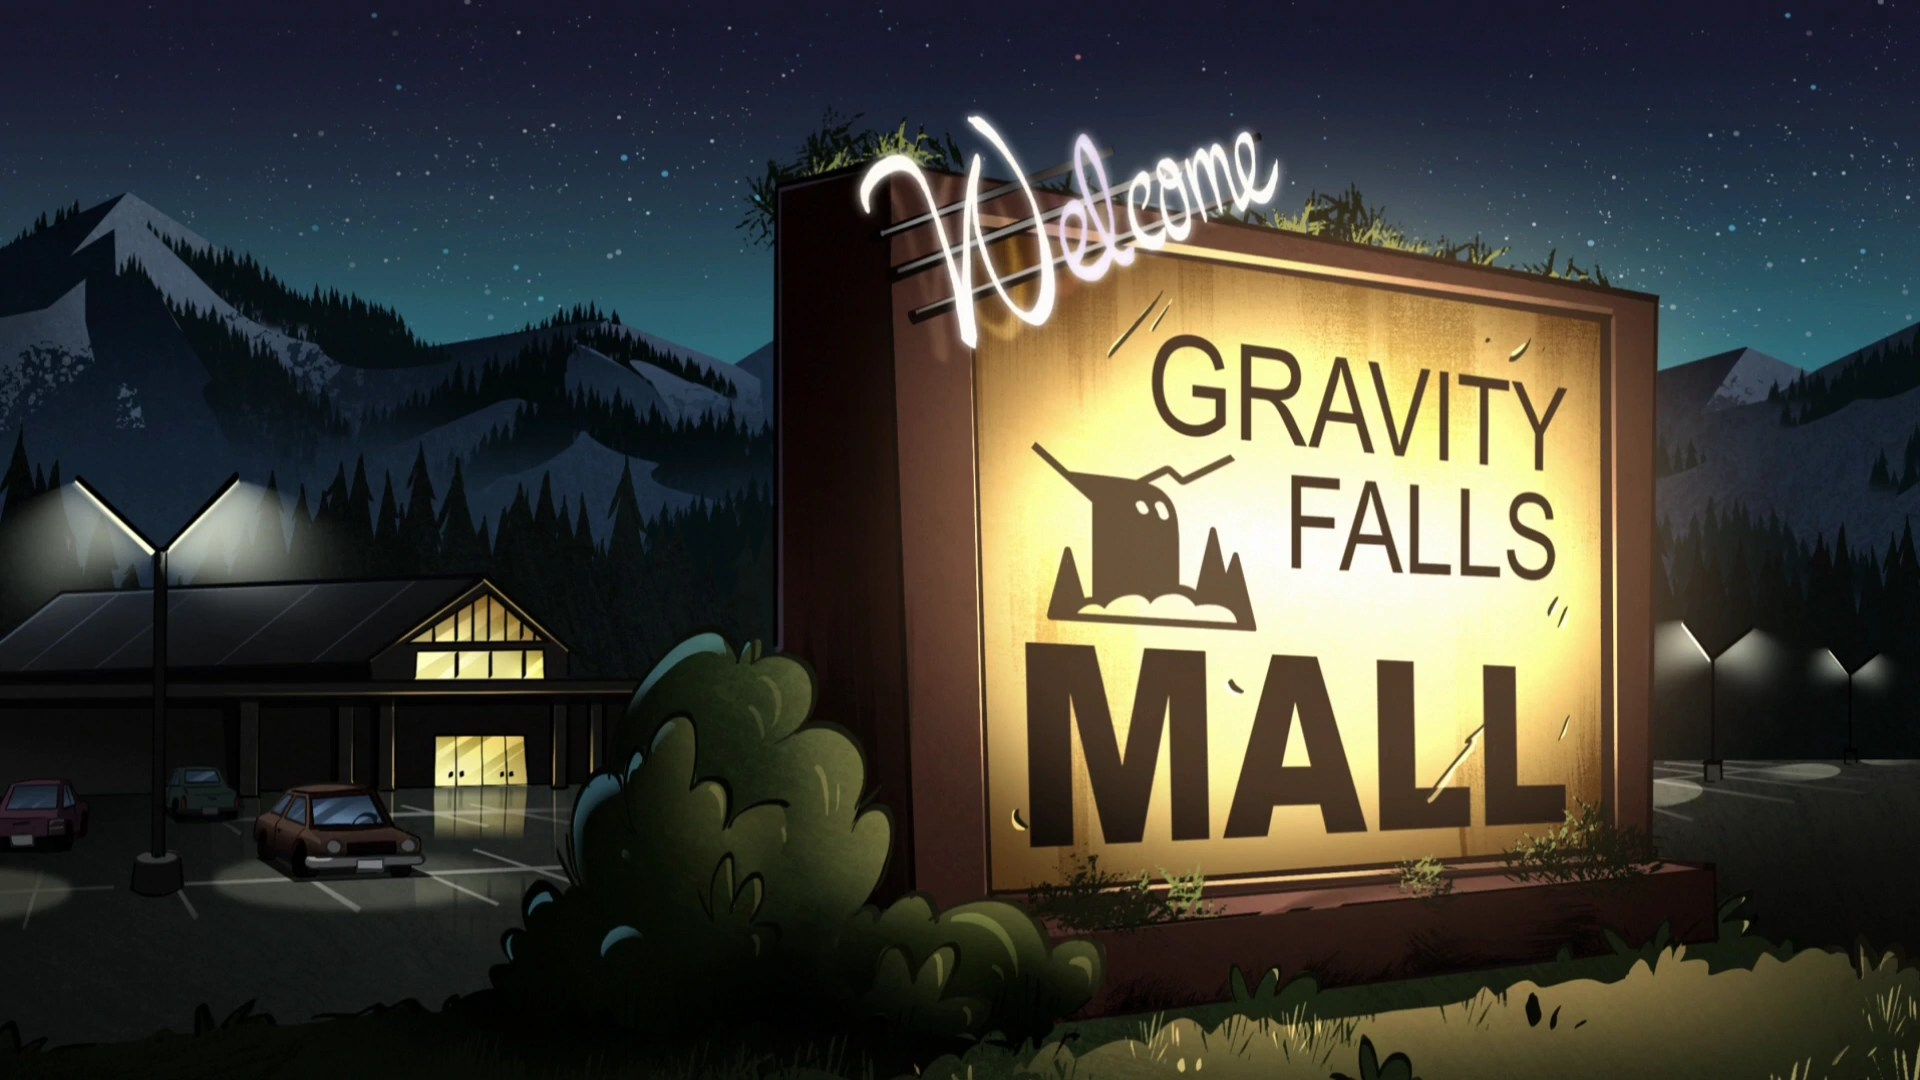 Soos Gravity Falls Wallpaper Gravity Malls Gravity Falls Wiki Fandom Powered By Wikia